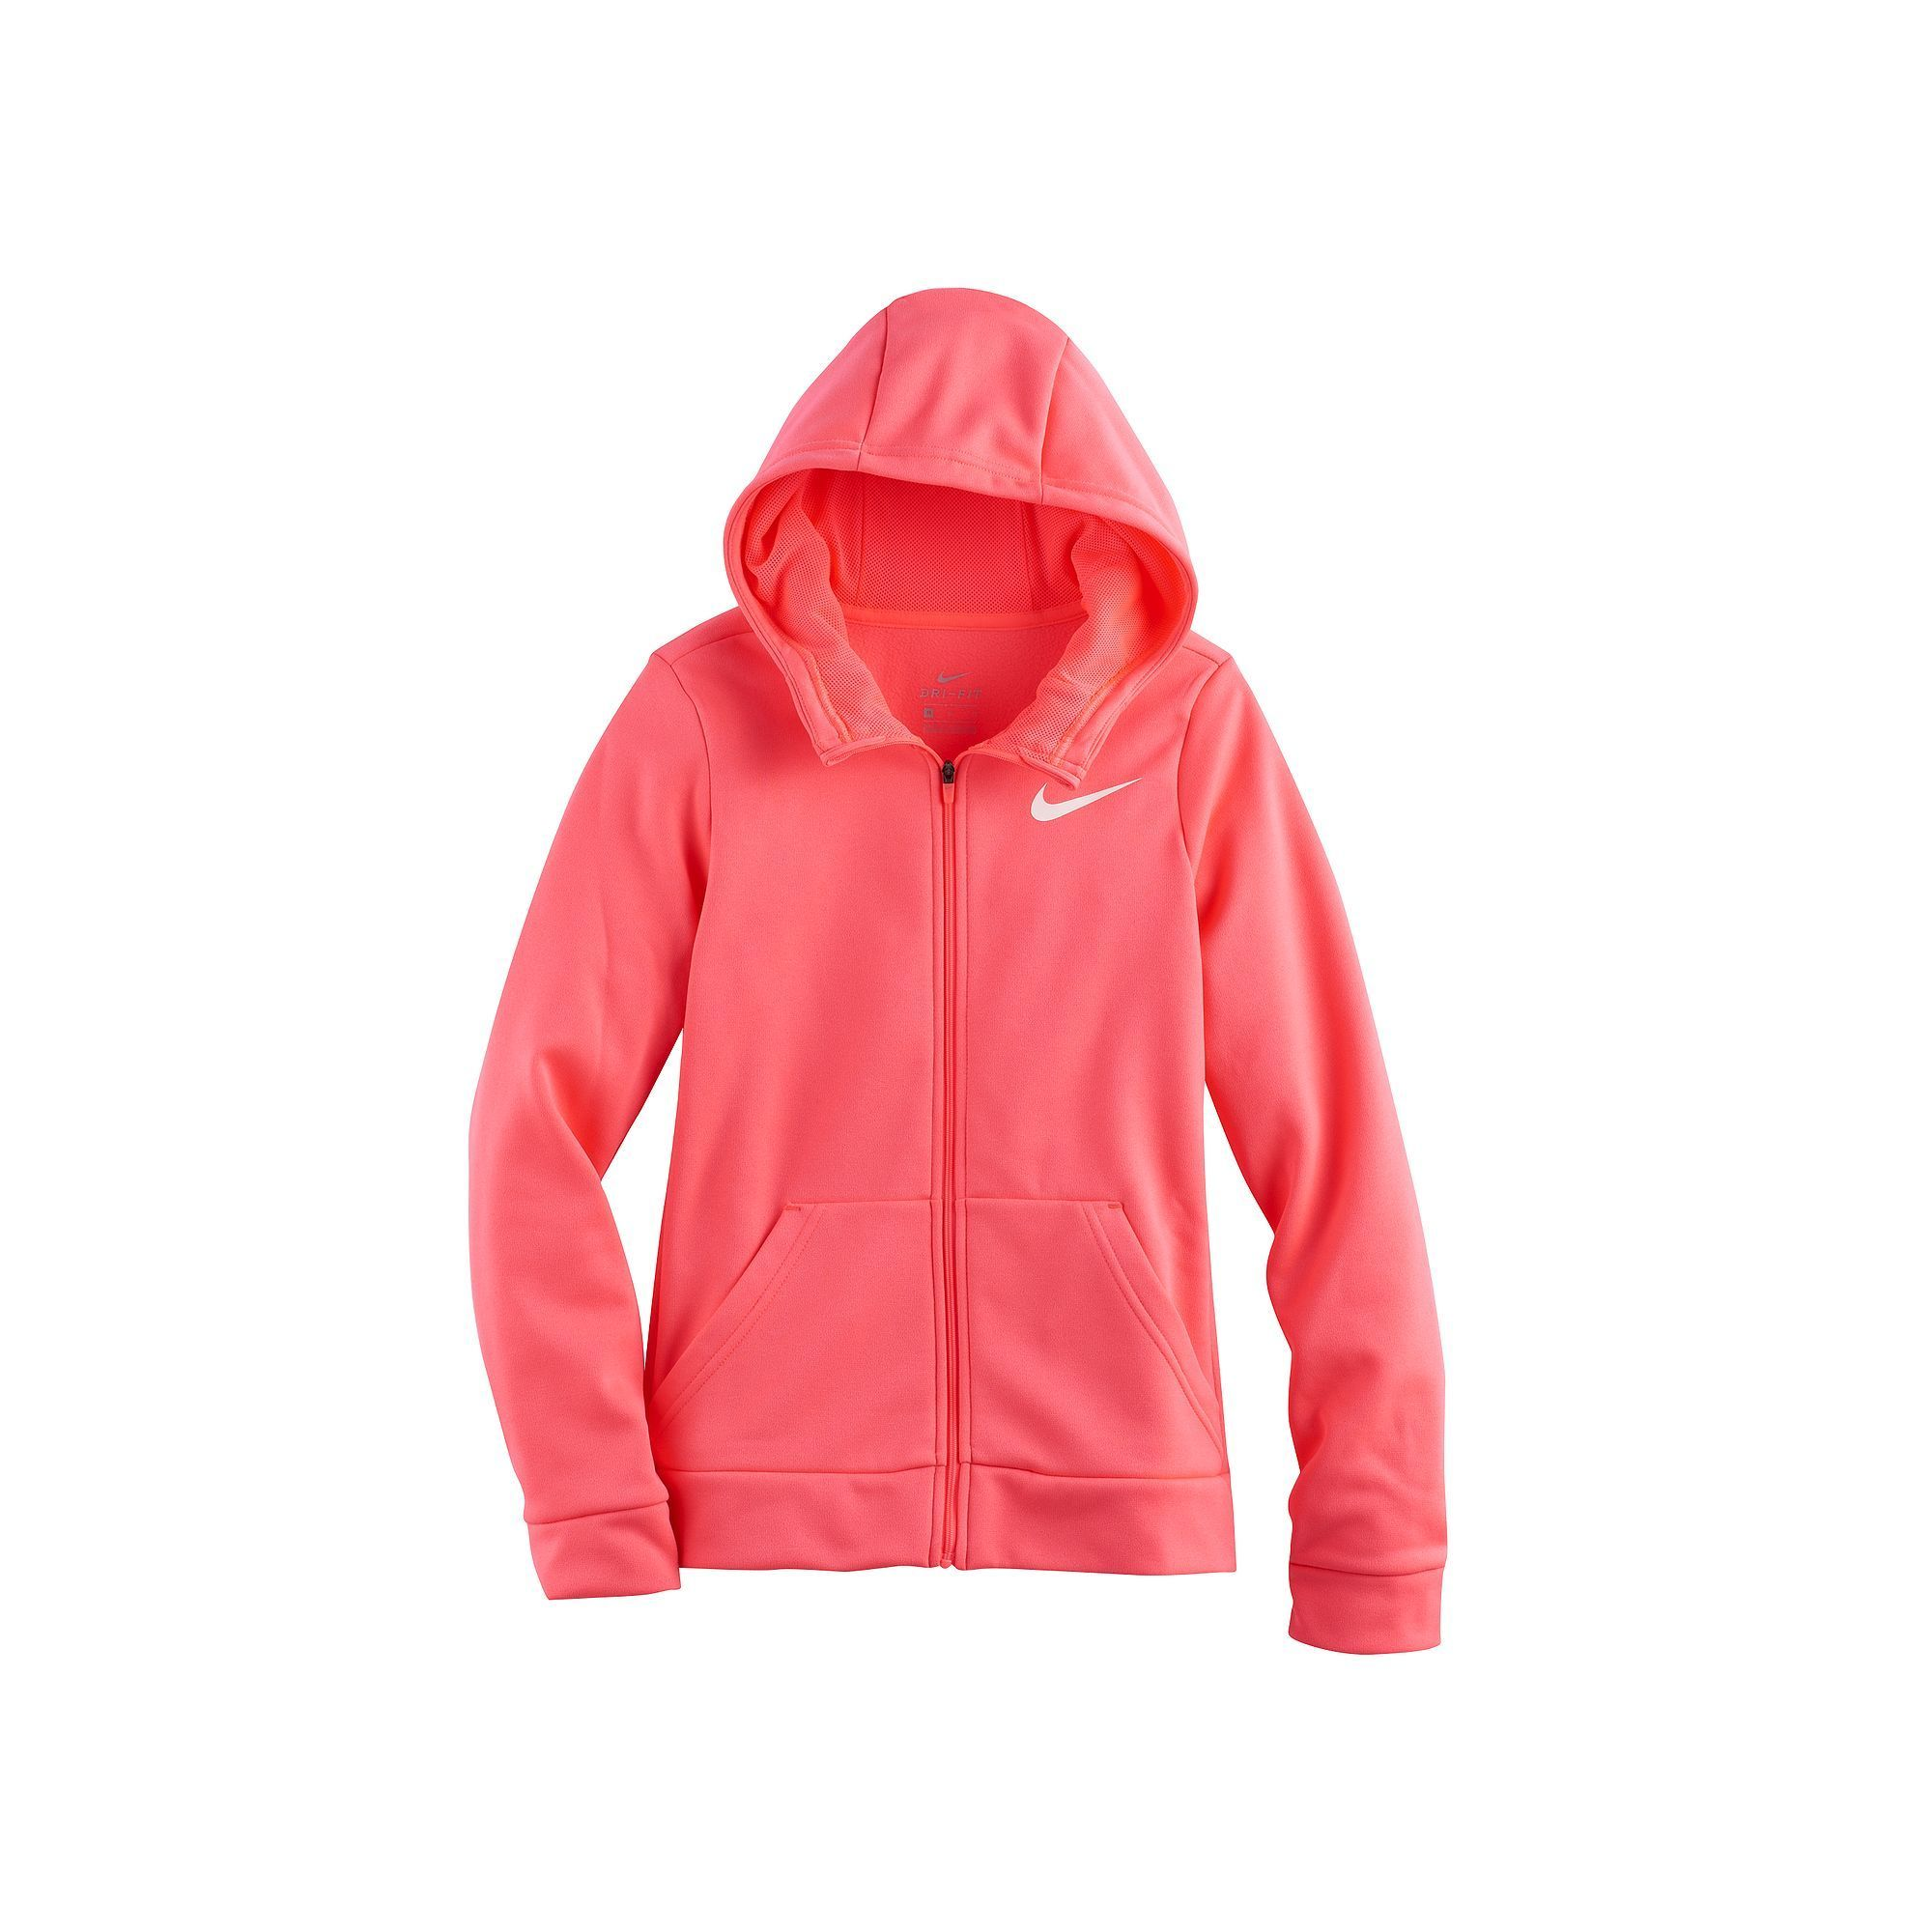 ea155327b607 Girls 7-16 Nike Therma Fleece-Lined Training Hoodie